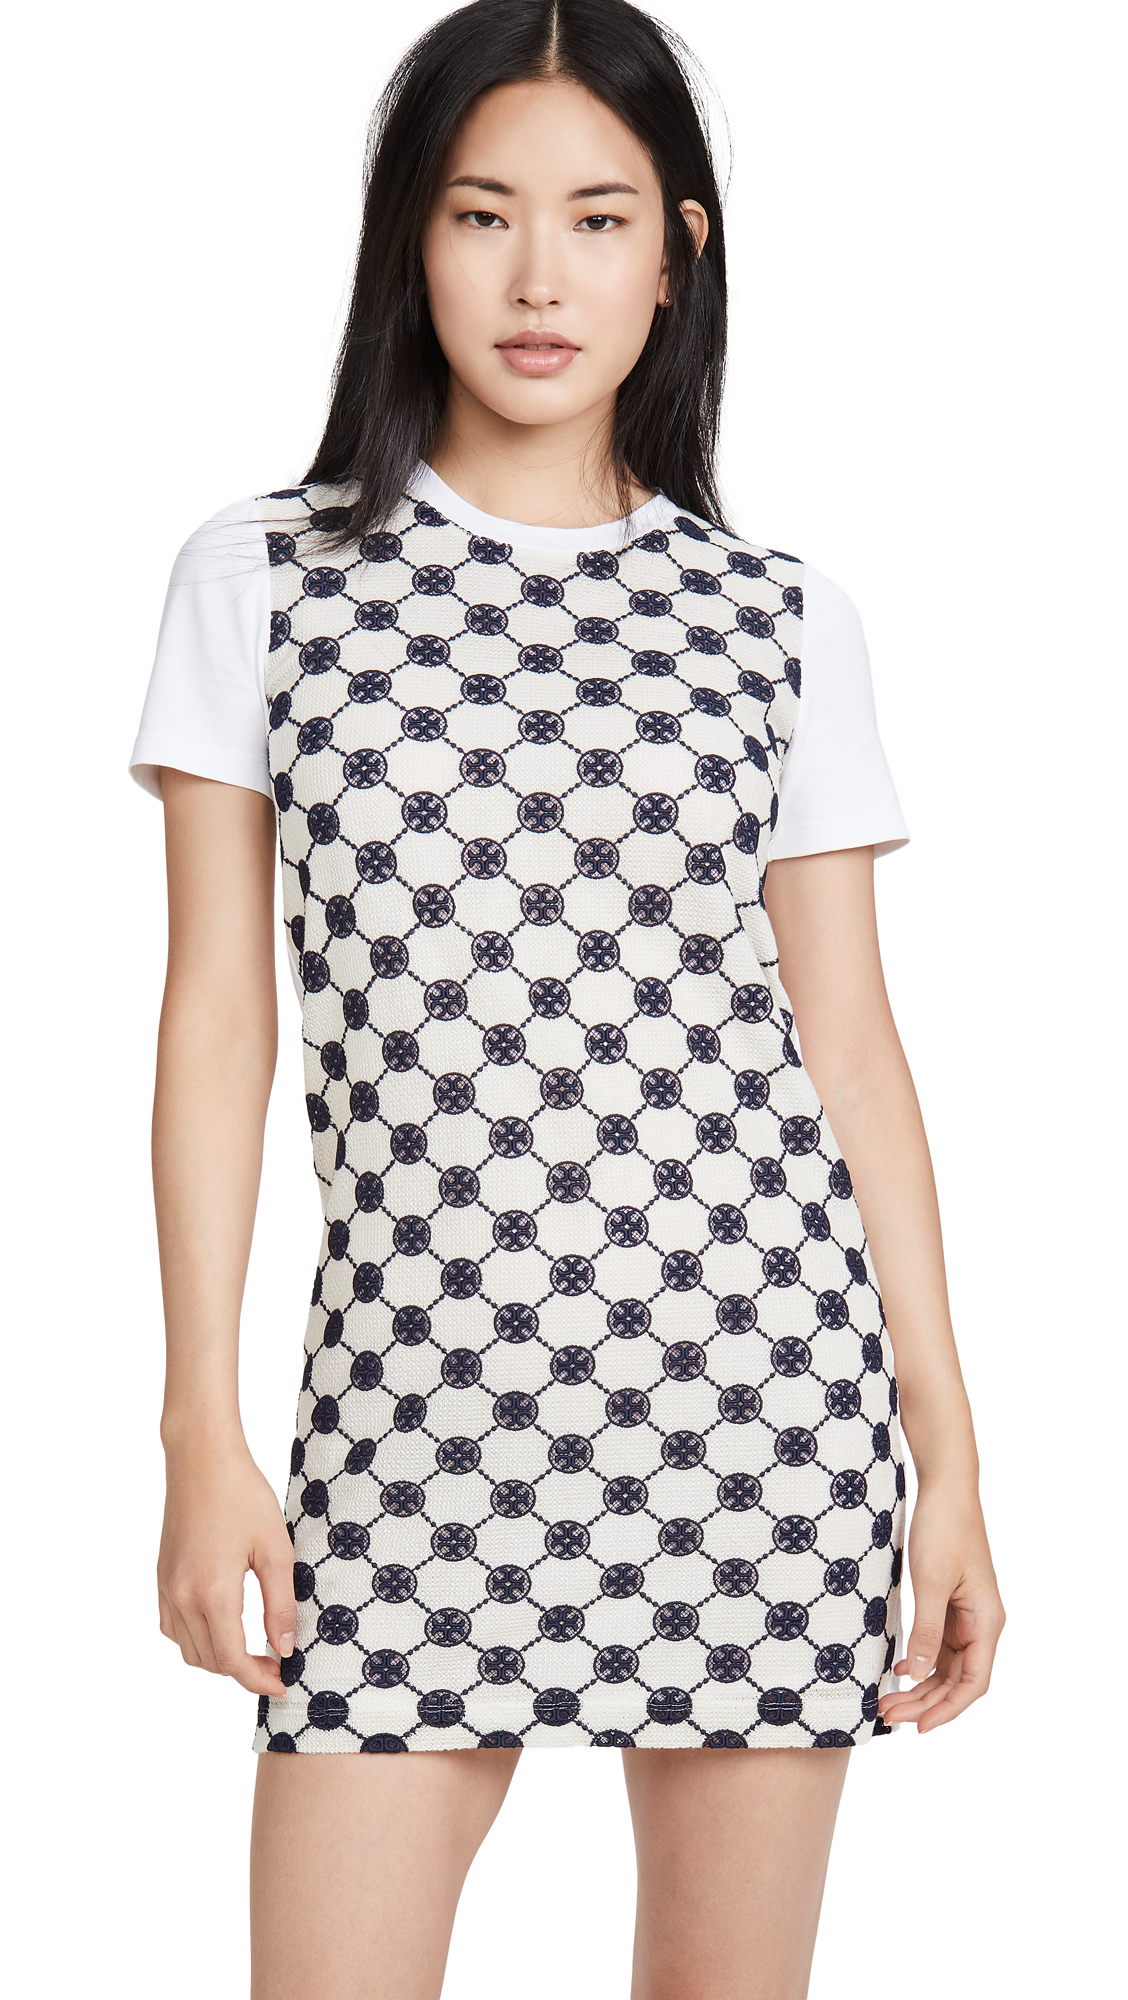 Tory Burch Logo T-Shirt Dress - 30% Off Sale